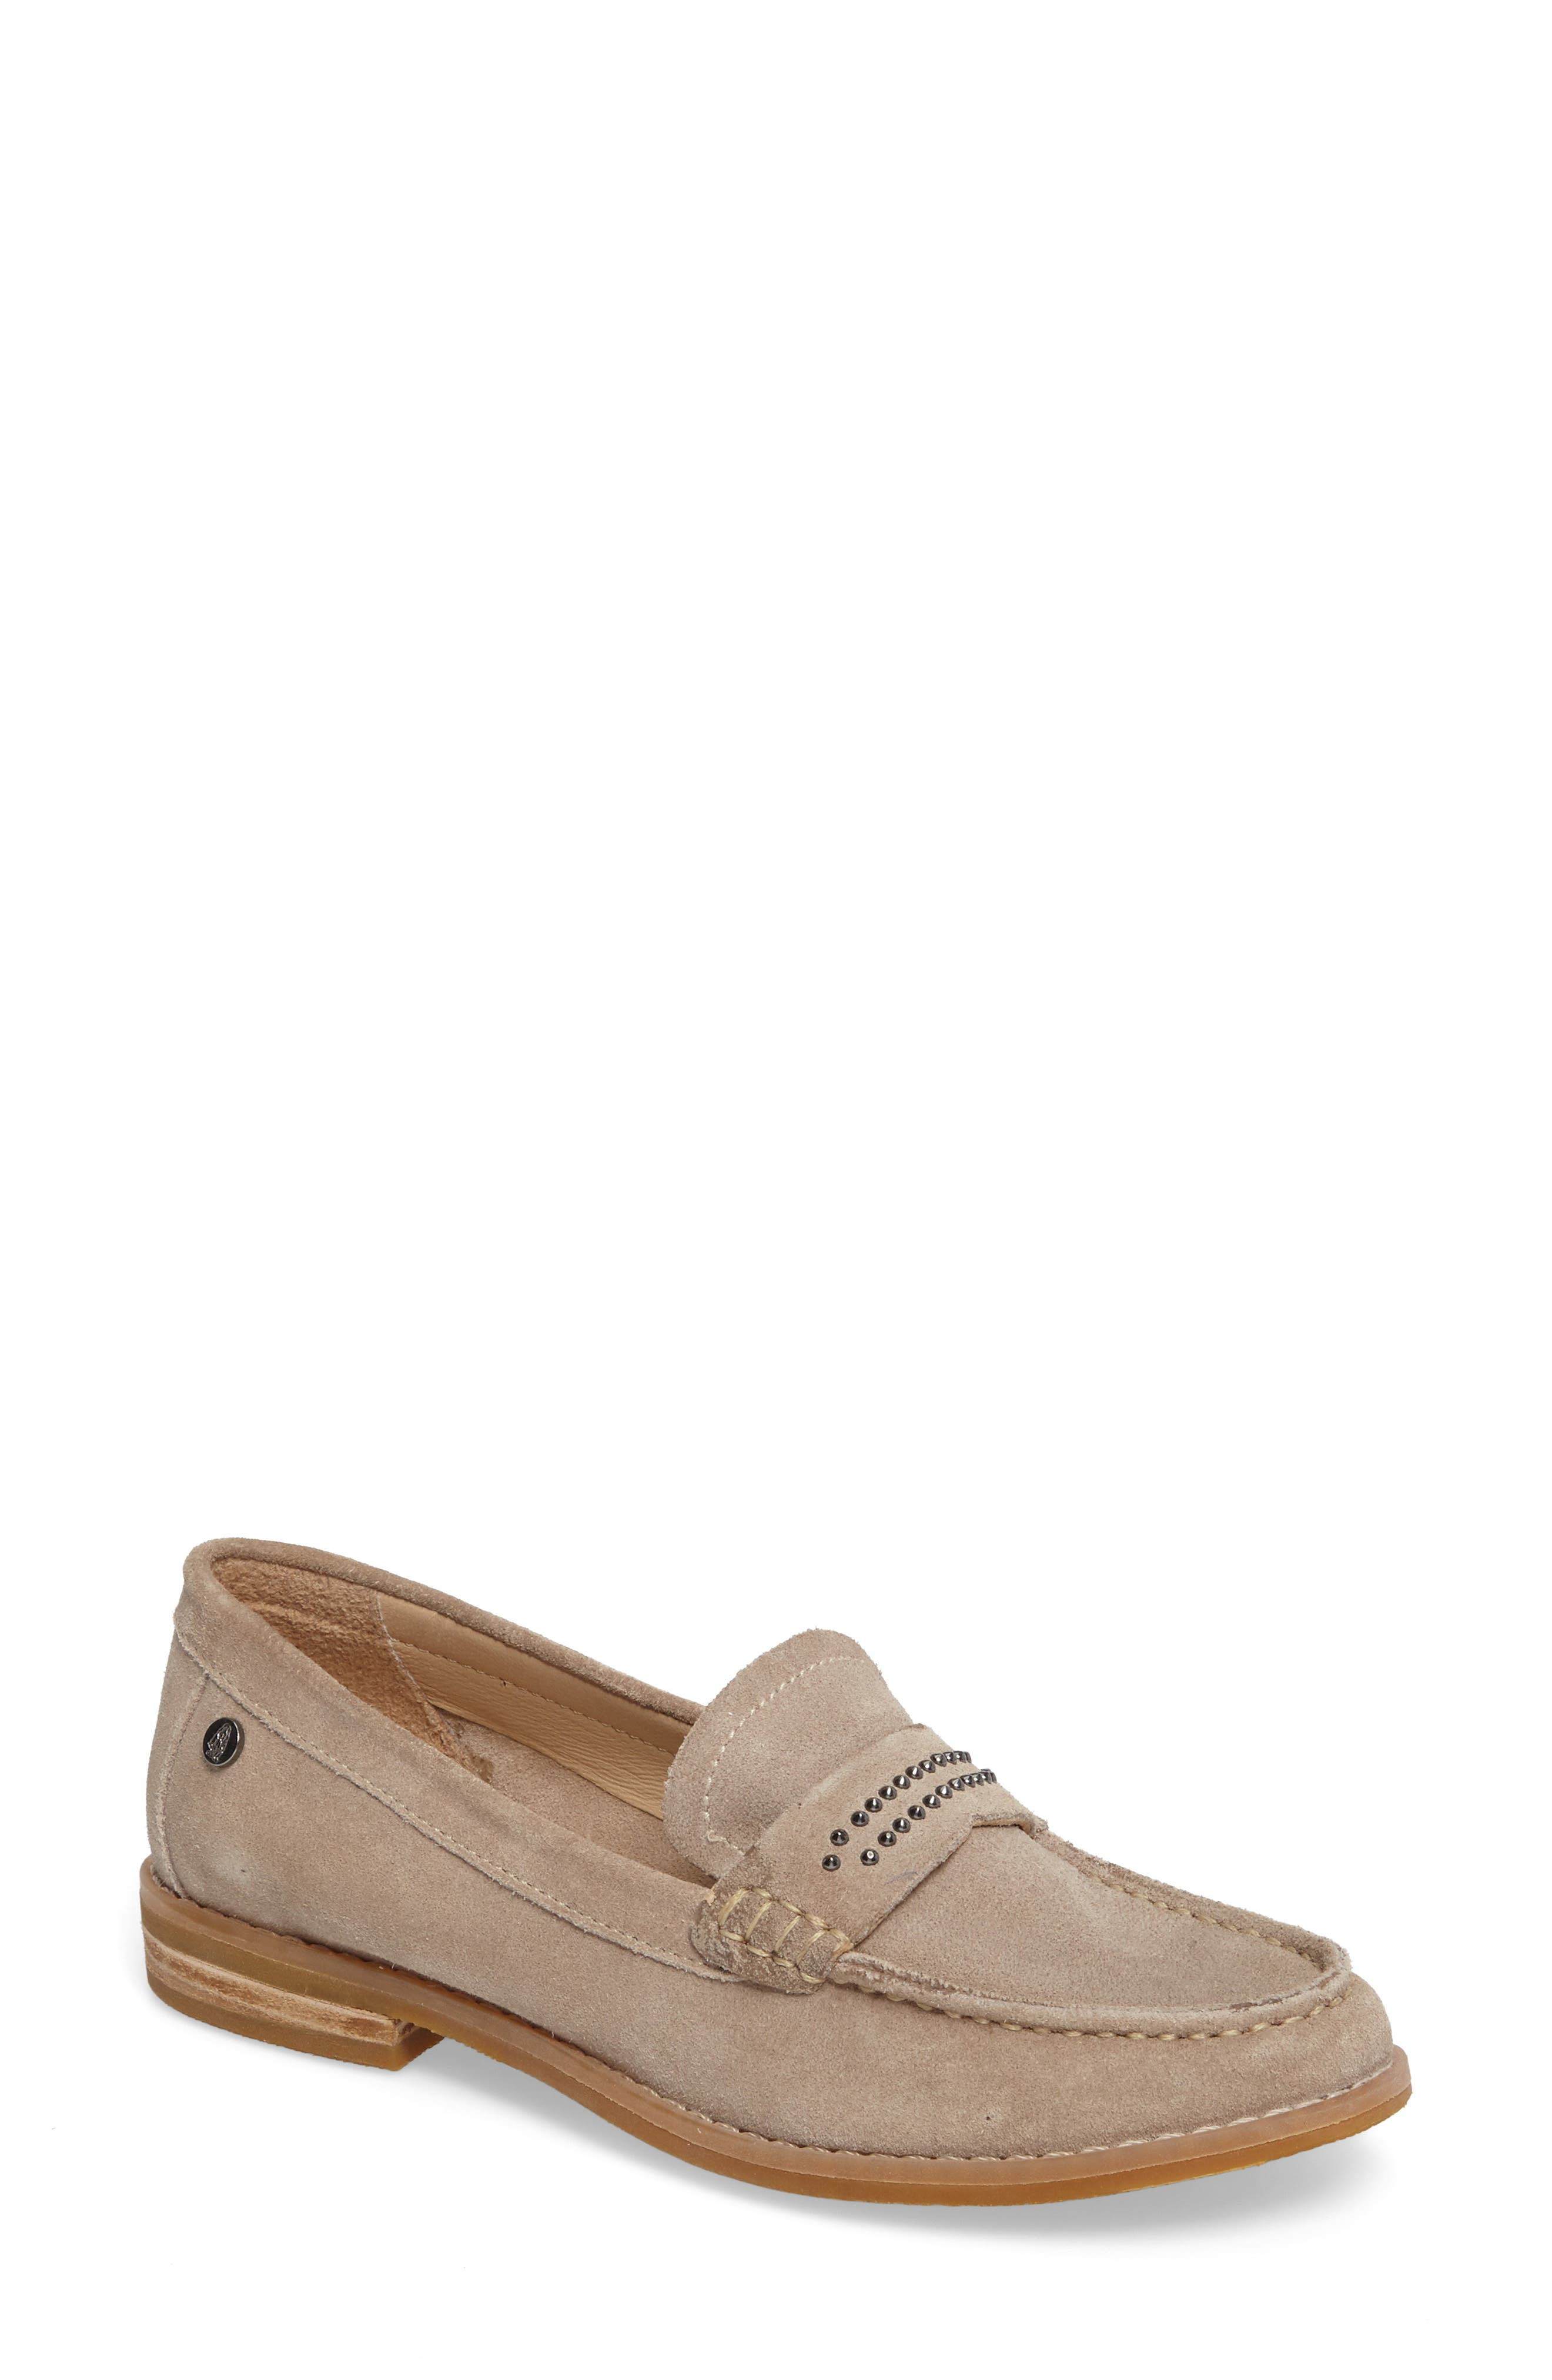 Aubree Chardon Loafer,                             Main thumbnail 1, color,                             Taupe Suede